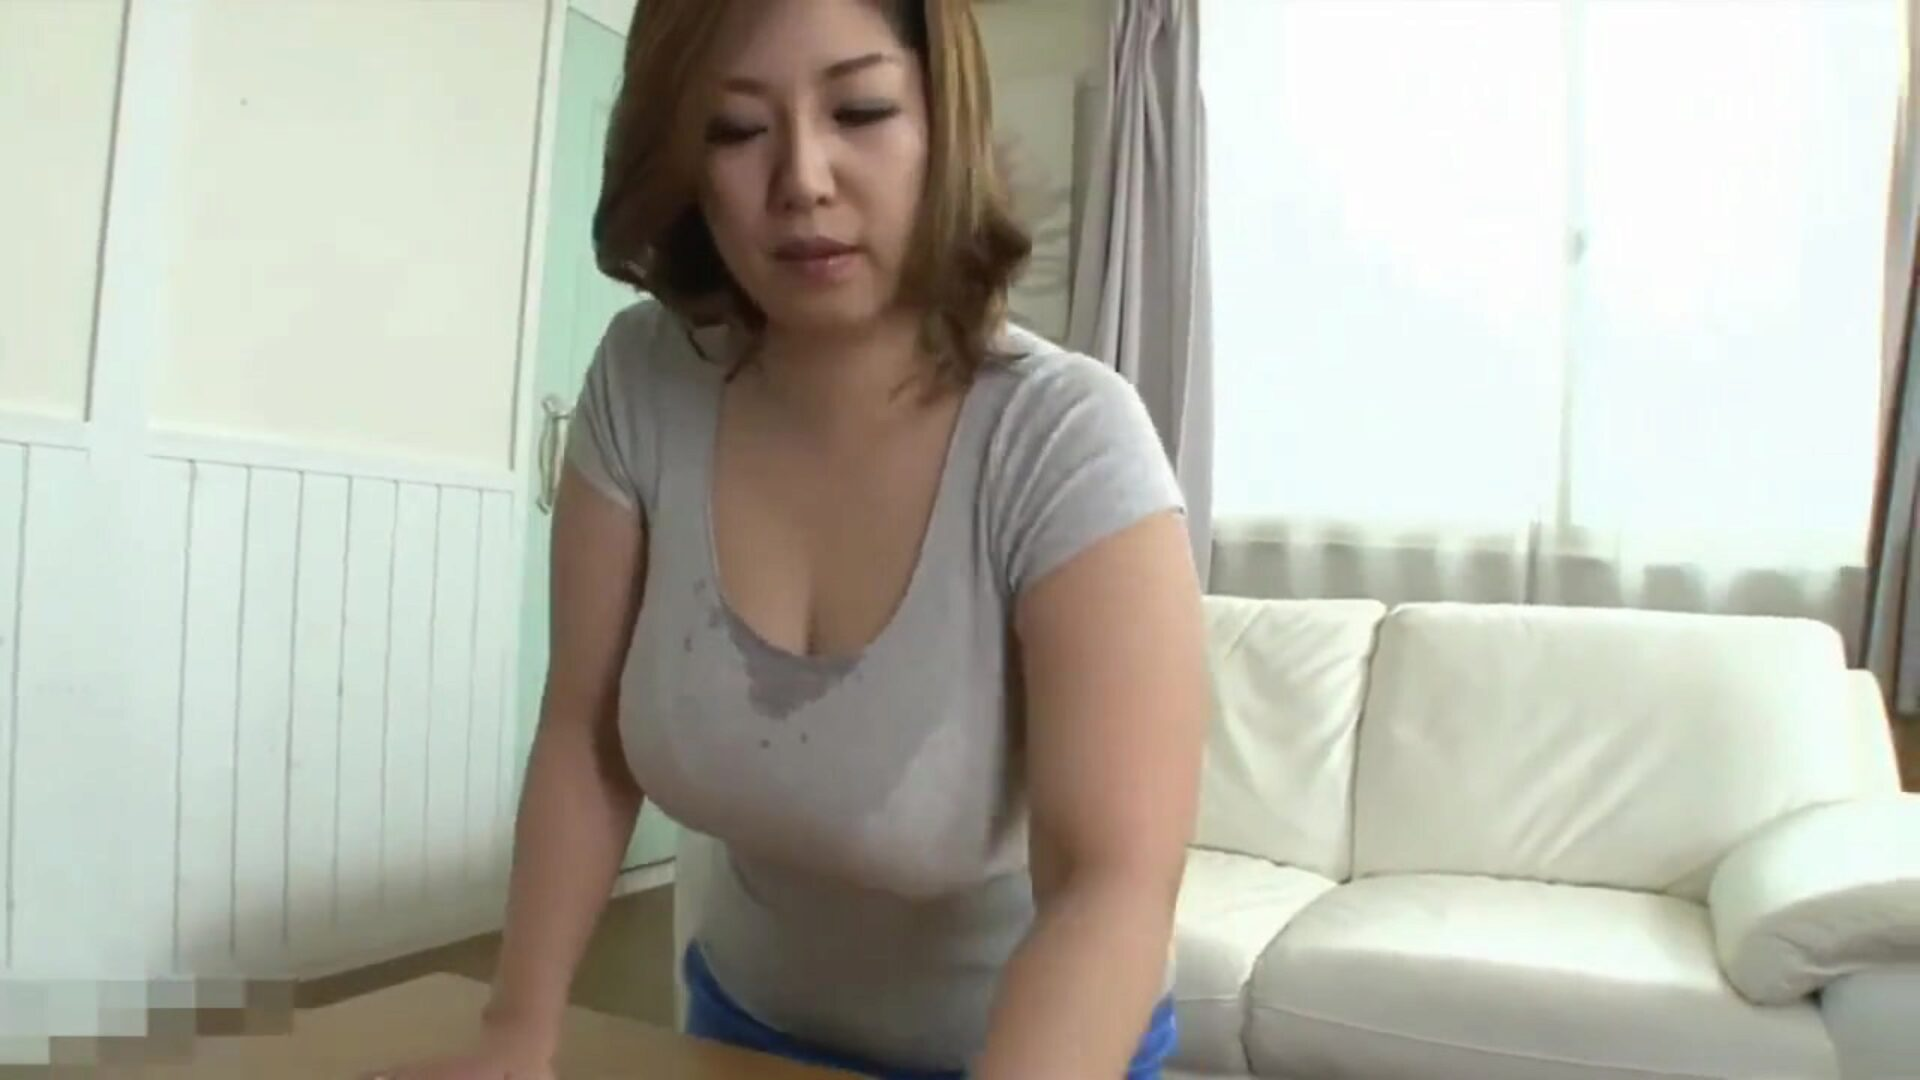 Japanese mama caught by surprise by stepson when cleaning Japanese step mamma busy cleaning when step sonny loses control and compels himself on her busty sweaty body